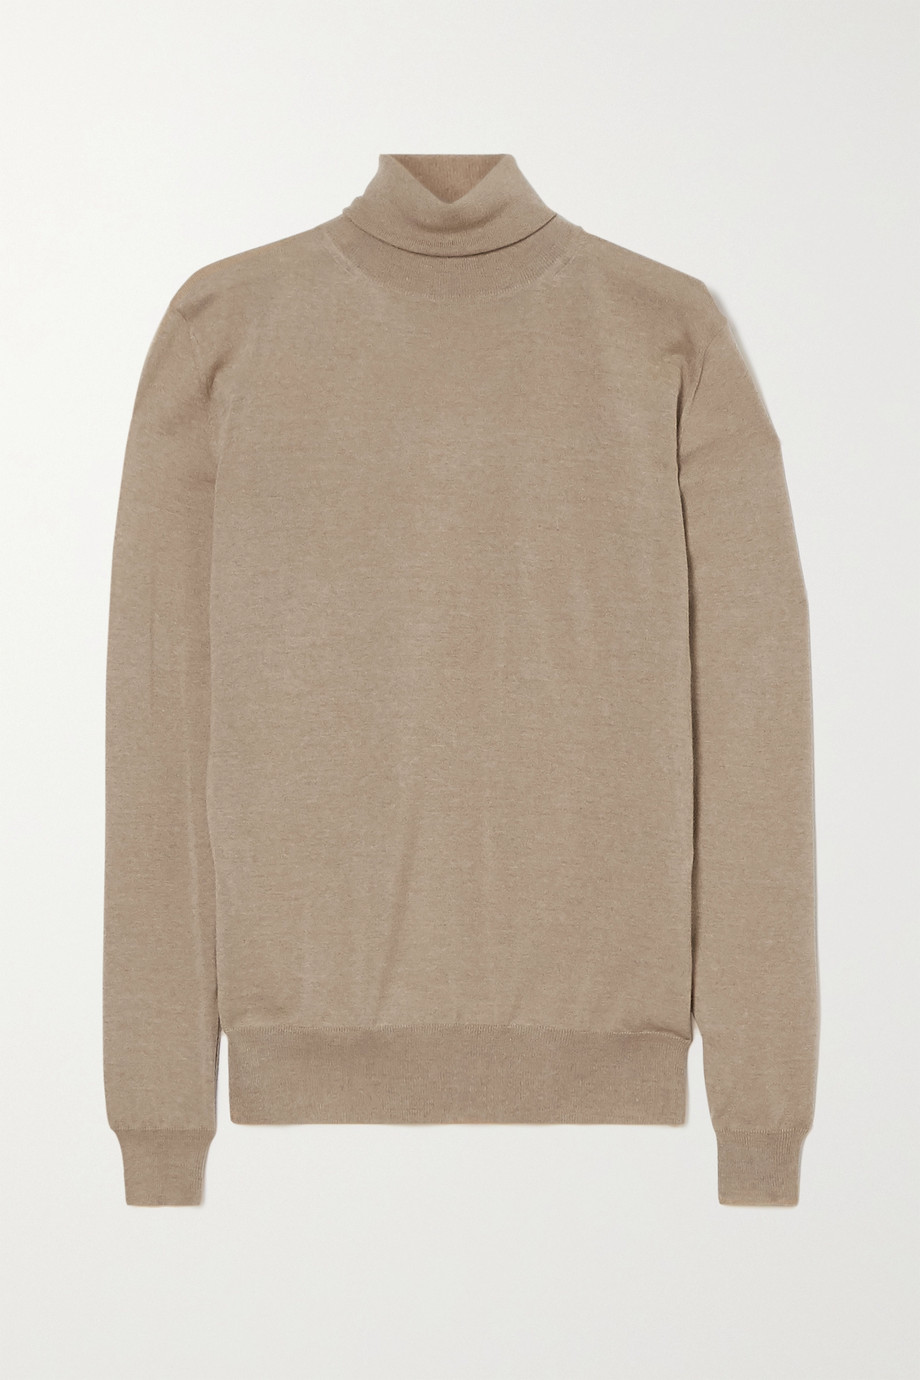 Stella McCartney Virgin wool turtleneck sweater